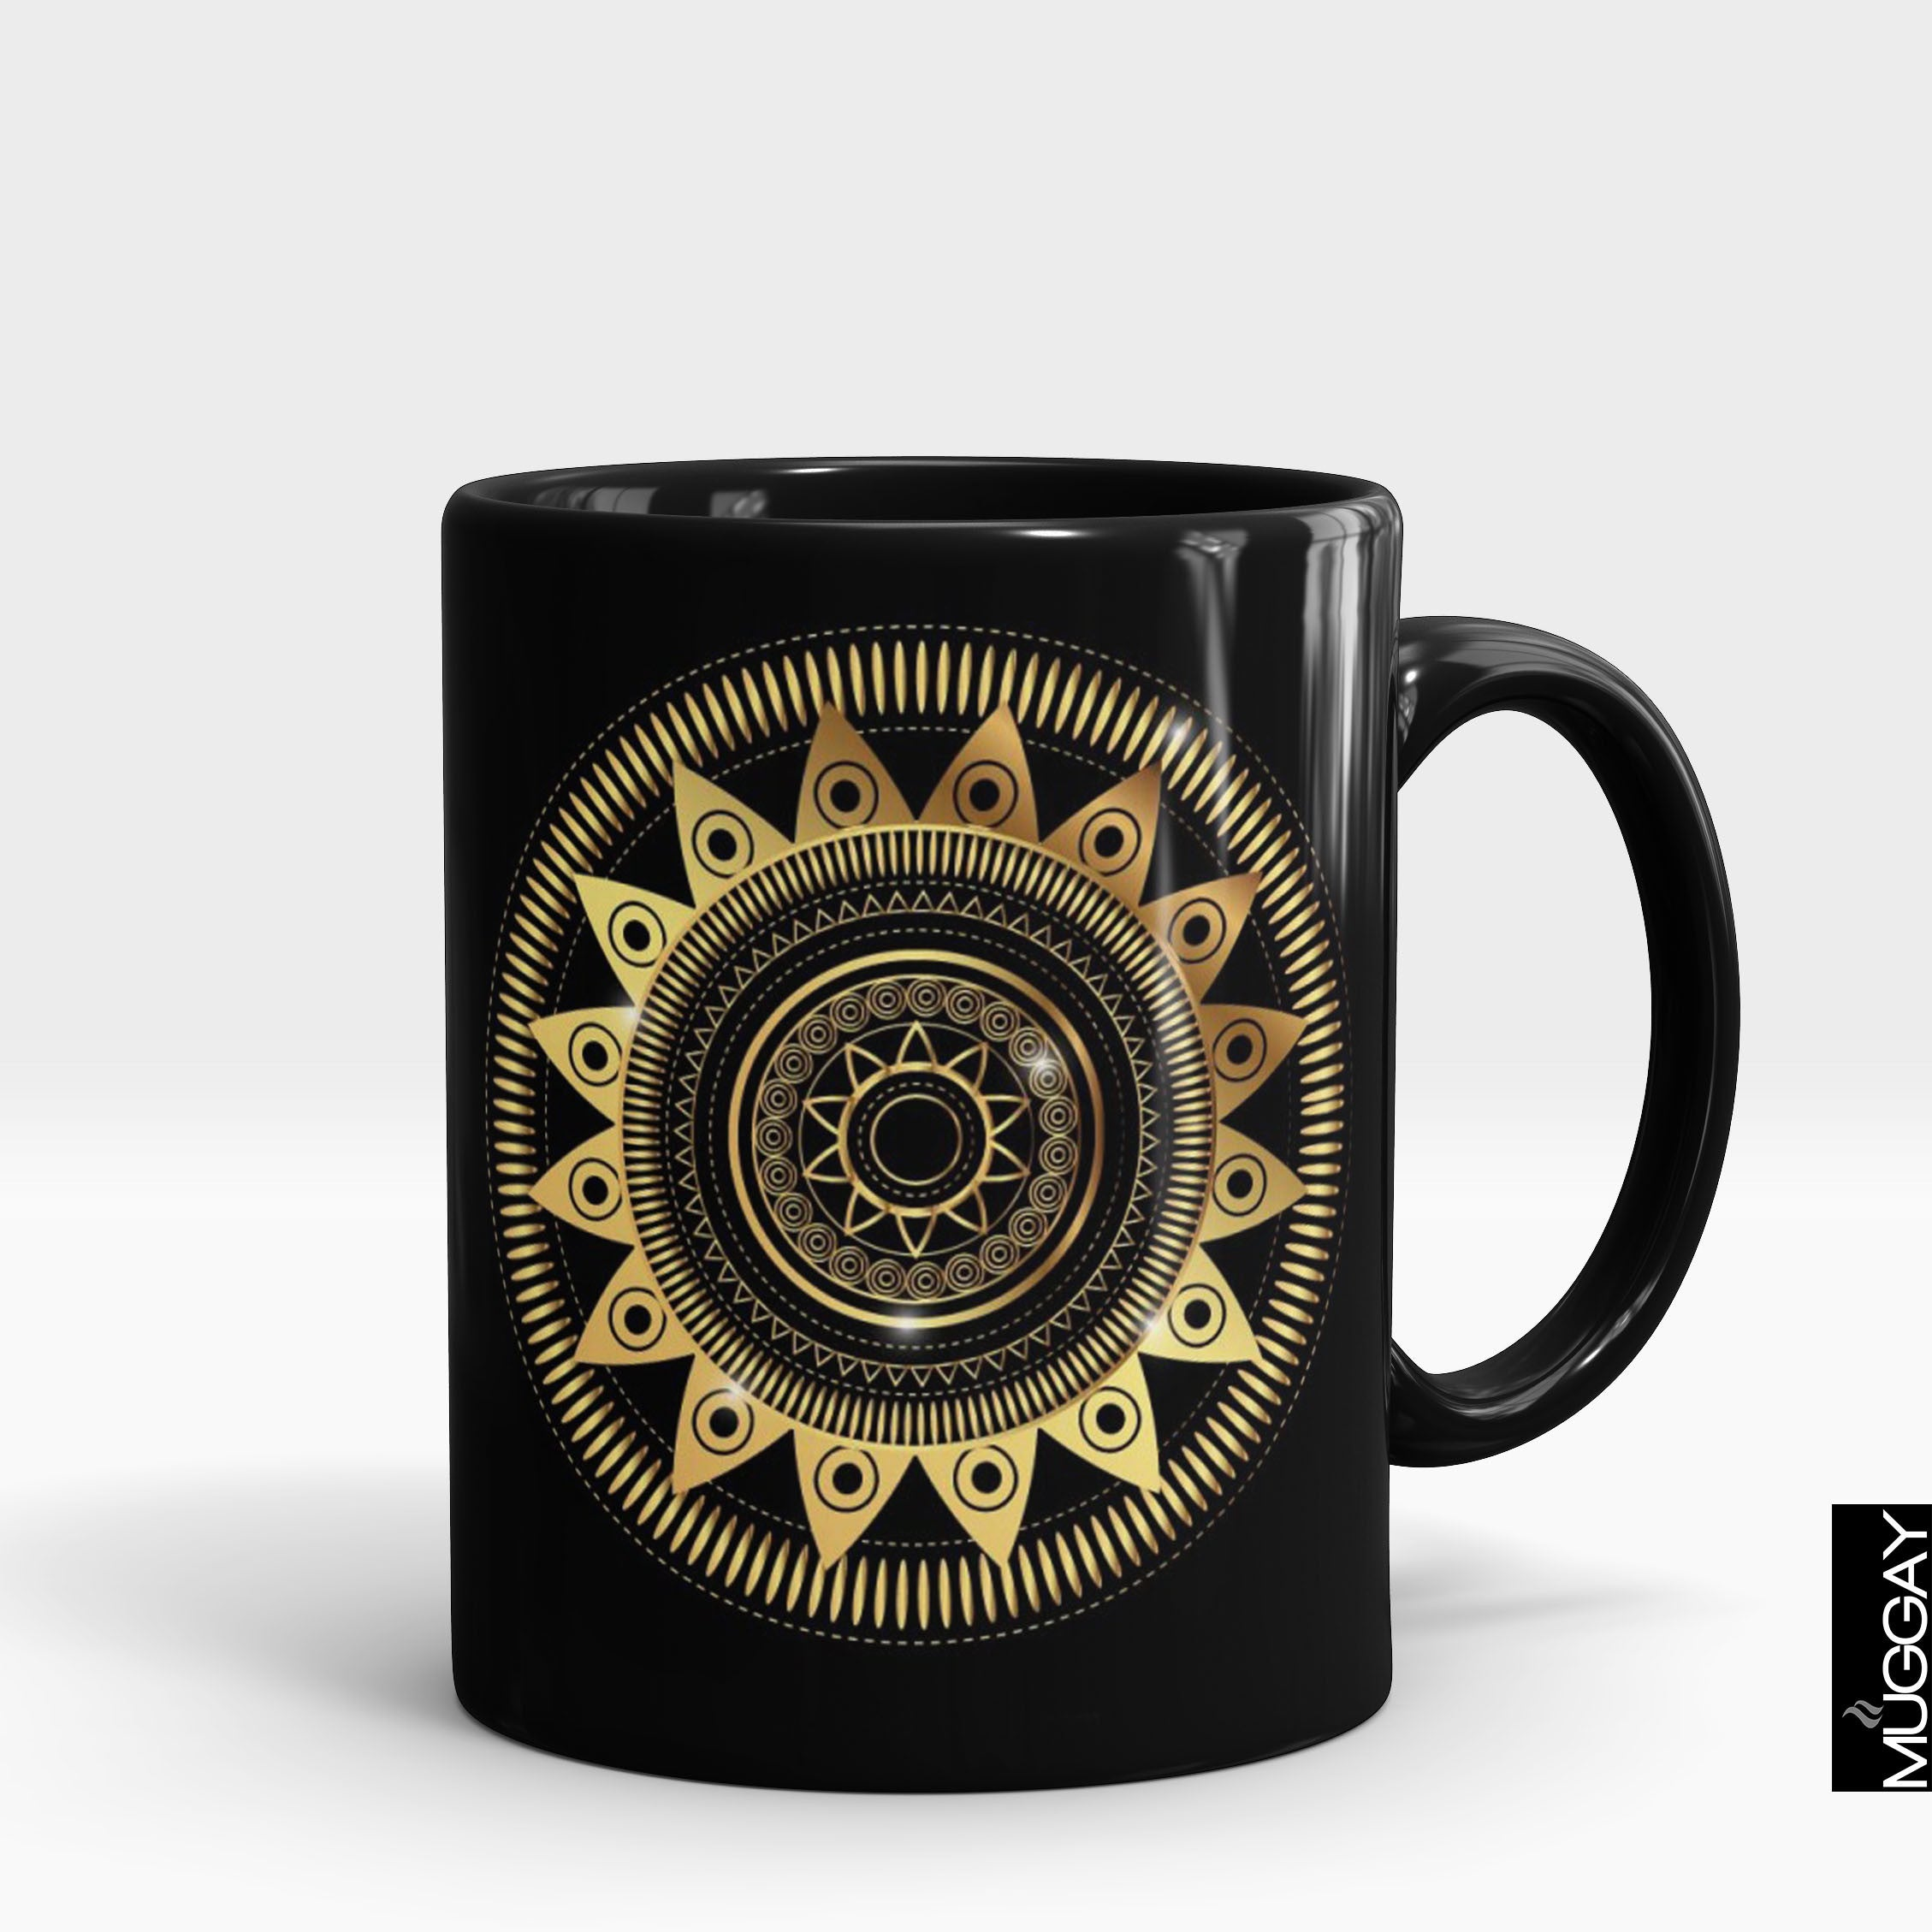 Mandala art mugs -18